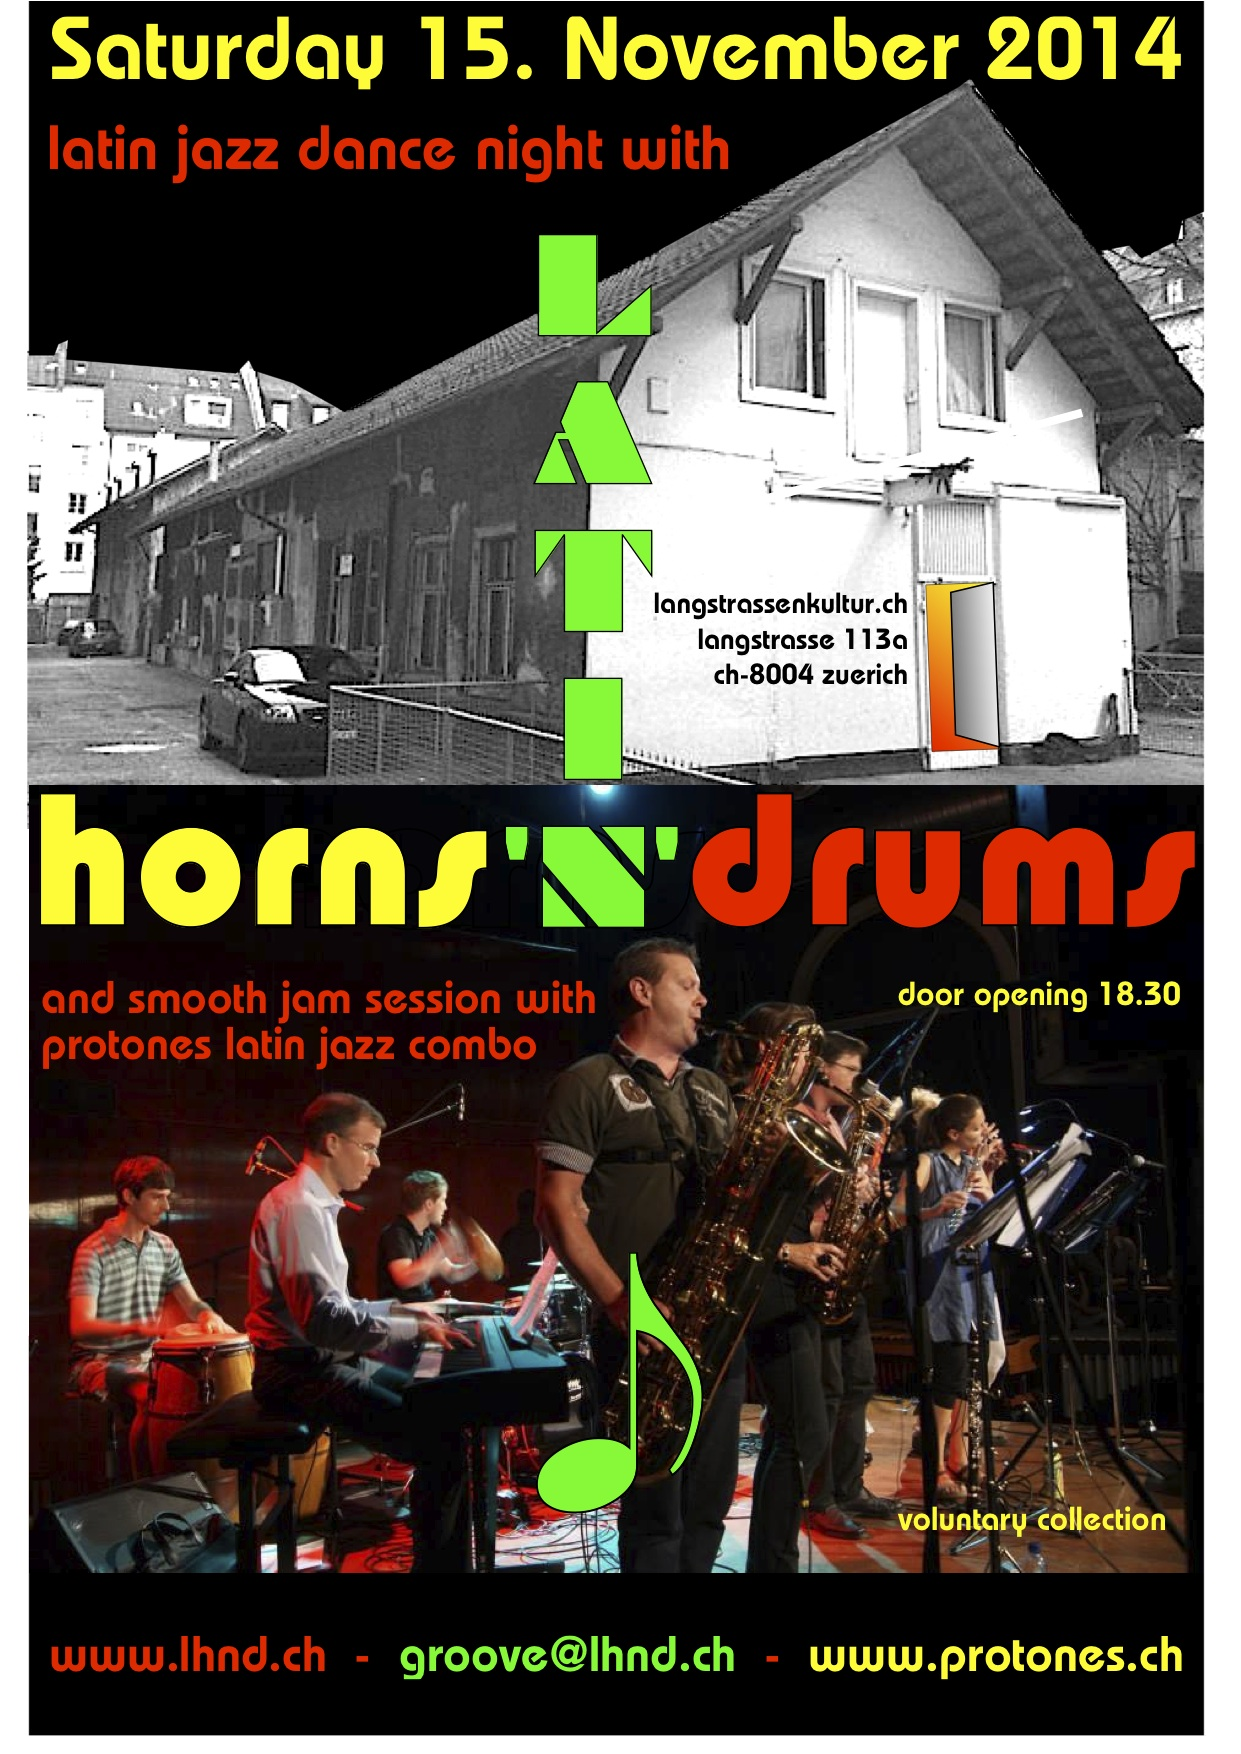 2014 09 15 LATIN HORNS'n'DRUMS